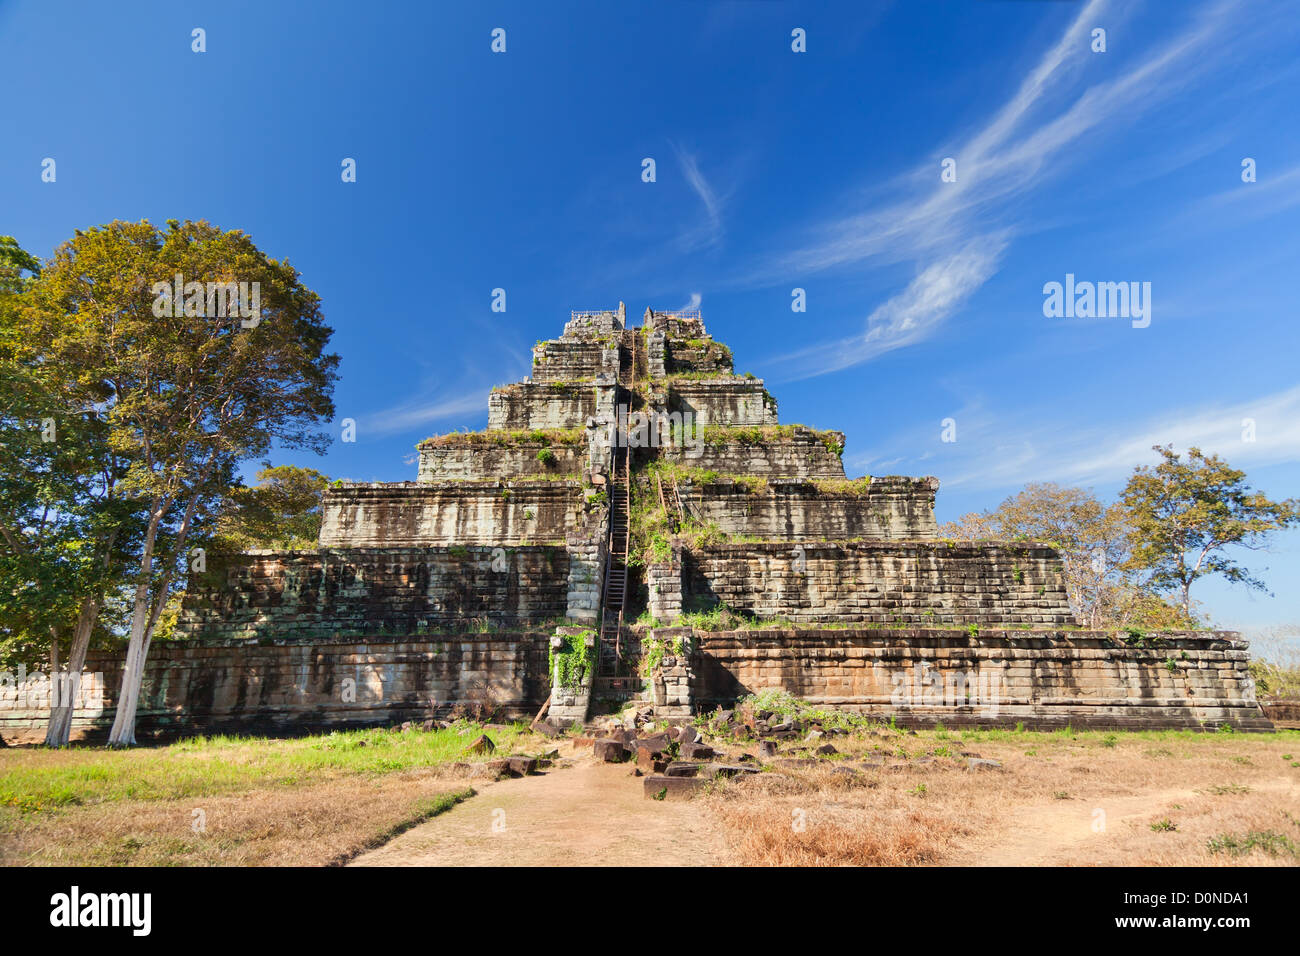 ancient-khmer-pyramid-in-koh-kher-cambod